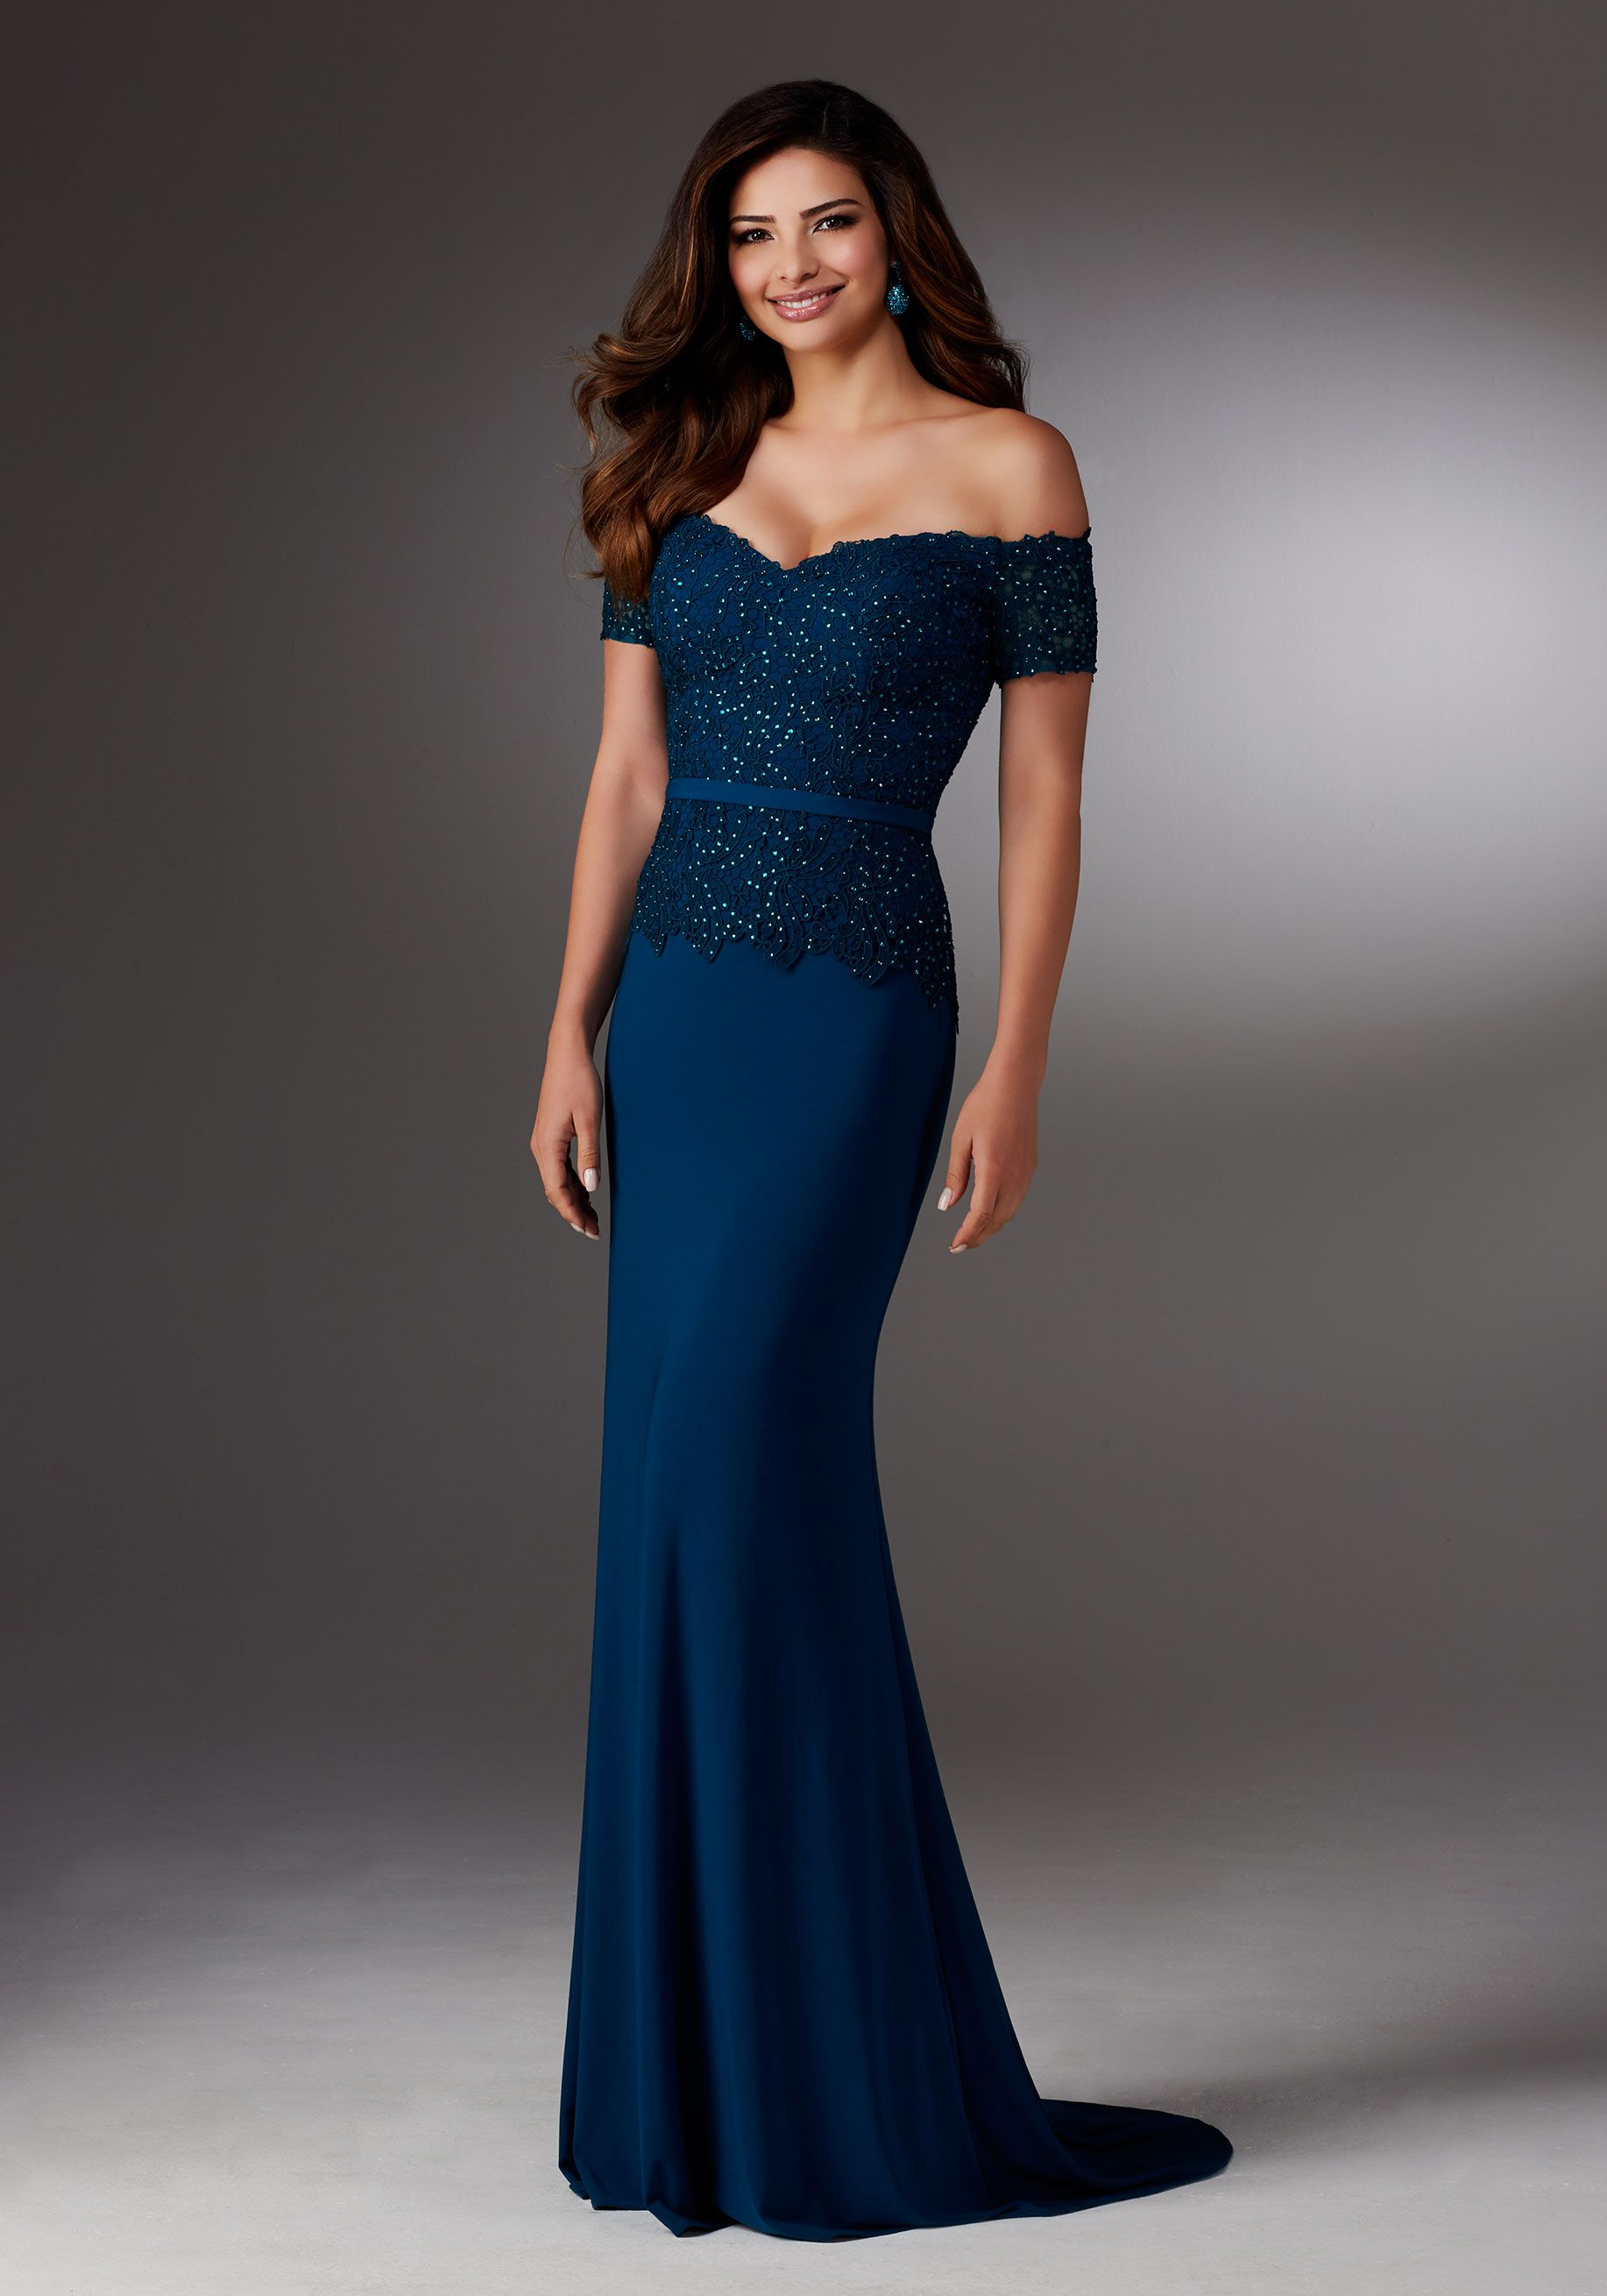 7b63cdd8e Evening Dresses and Mother of the Bride Dresses by Morilee. Form Fitting  Jersey Dress with Off-the-Shoulder Beaded Lace Bodice and Removable Jersey  Belt.